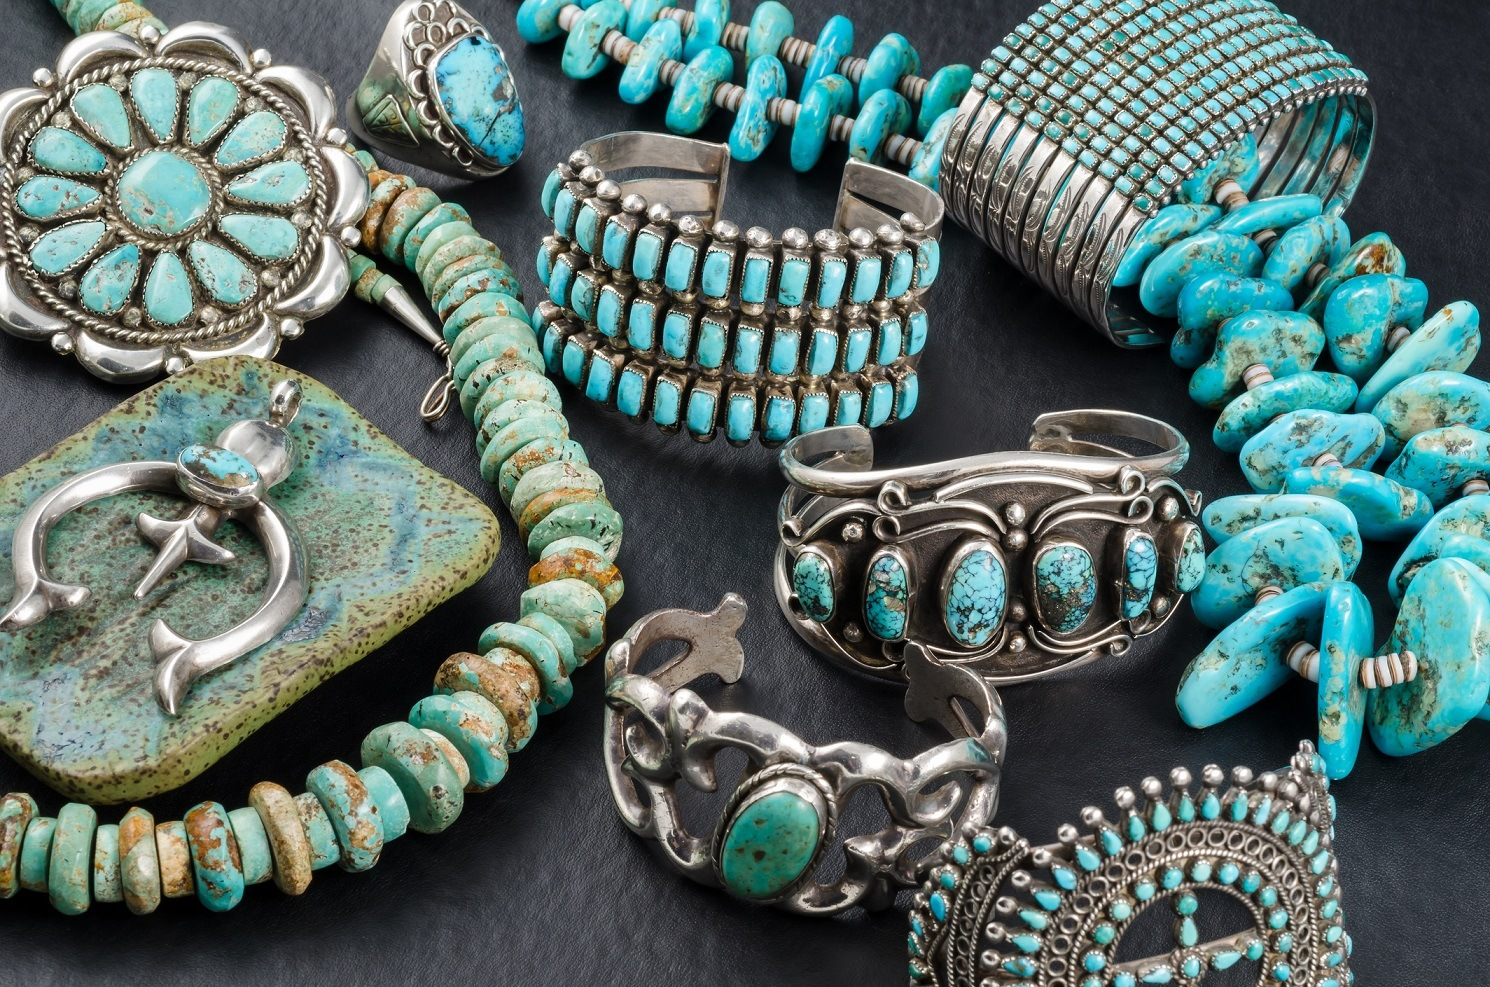 Collection of Native American Turquoise and Silver Jewelry.